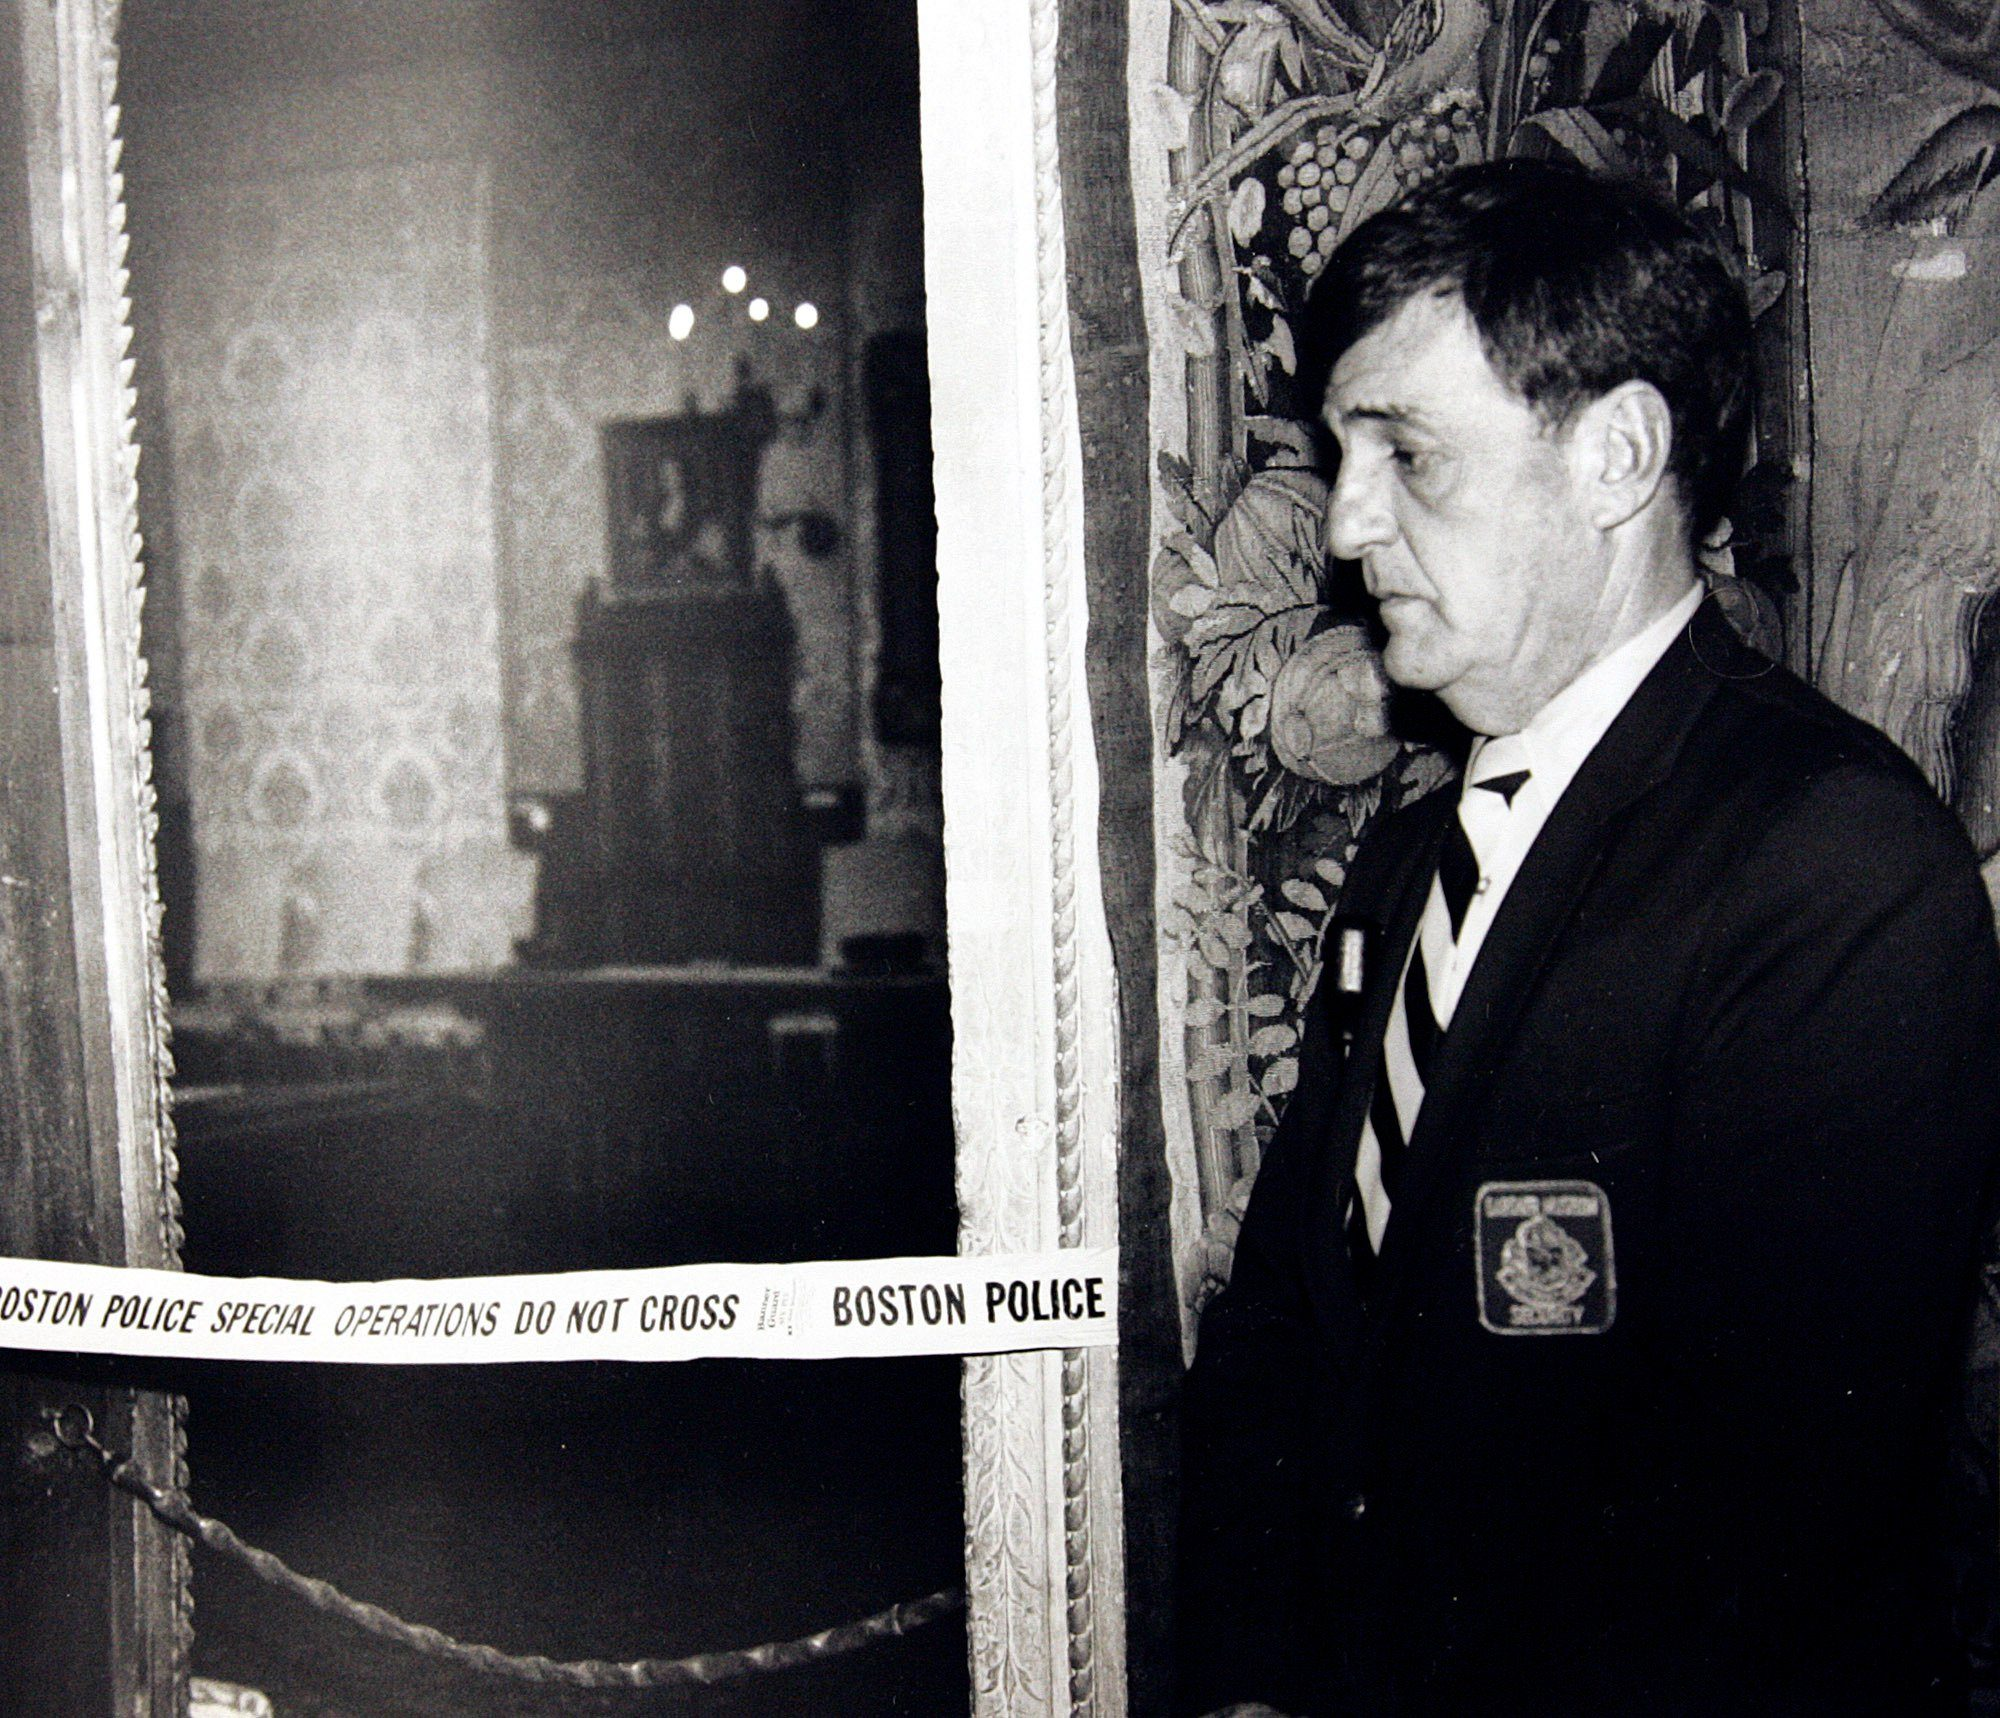 A security guard stands outside the Dutch Room of the Isabella Stewart Gardner Museum in Boston, where robbers stole more than a dozen works of art by Rembrandt, Vermeer, Degas, Manet and others, in an early morning robbery March 18, 1990. The FBI said, it believes it knows the identities of the thieves who stole the art. Richard DesLauriers, the FBI's special agent in charge in Boston, says the thieves belong to a criminal organization based in New England the mid-Atlantic states Art Heist Mystery, Boston, USA